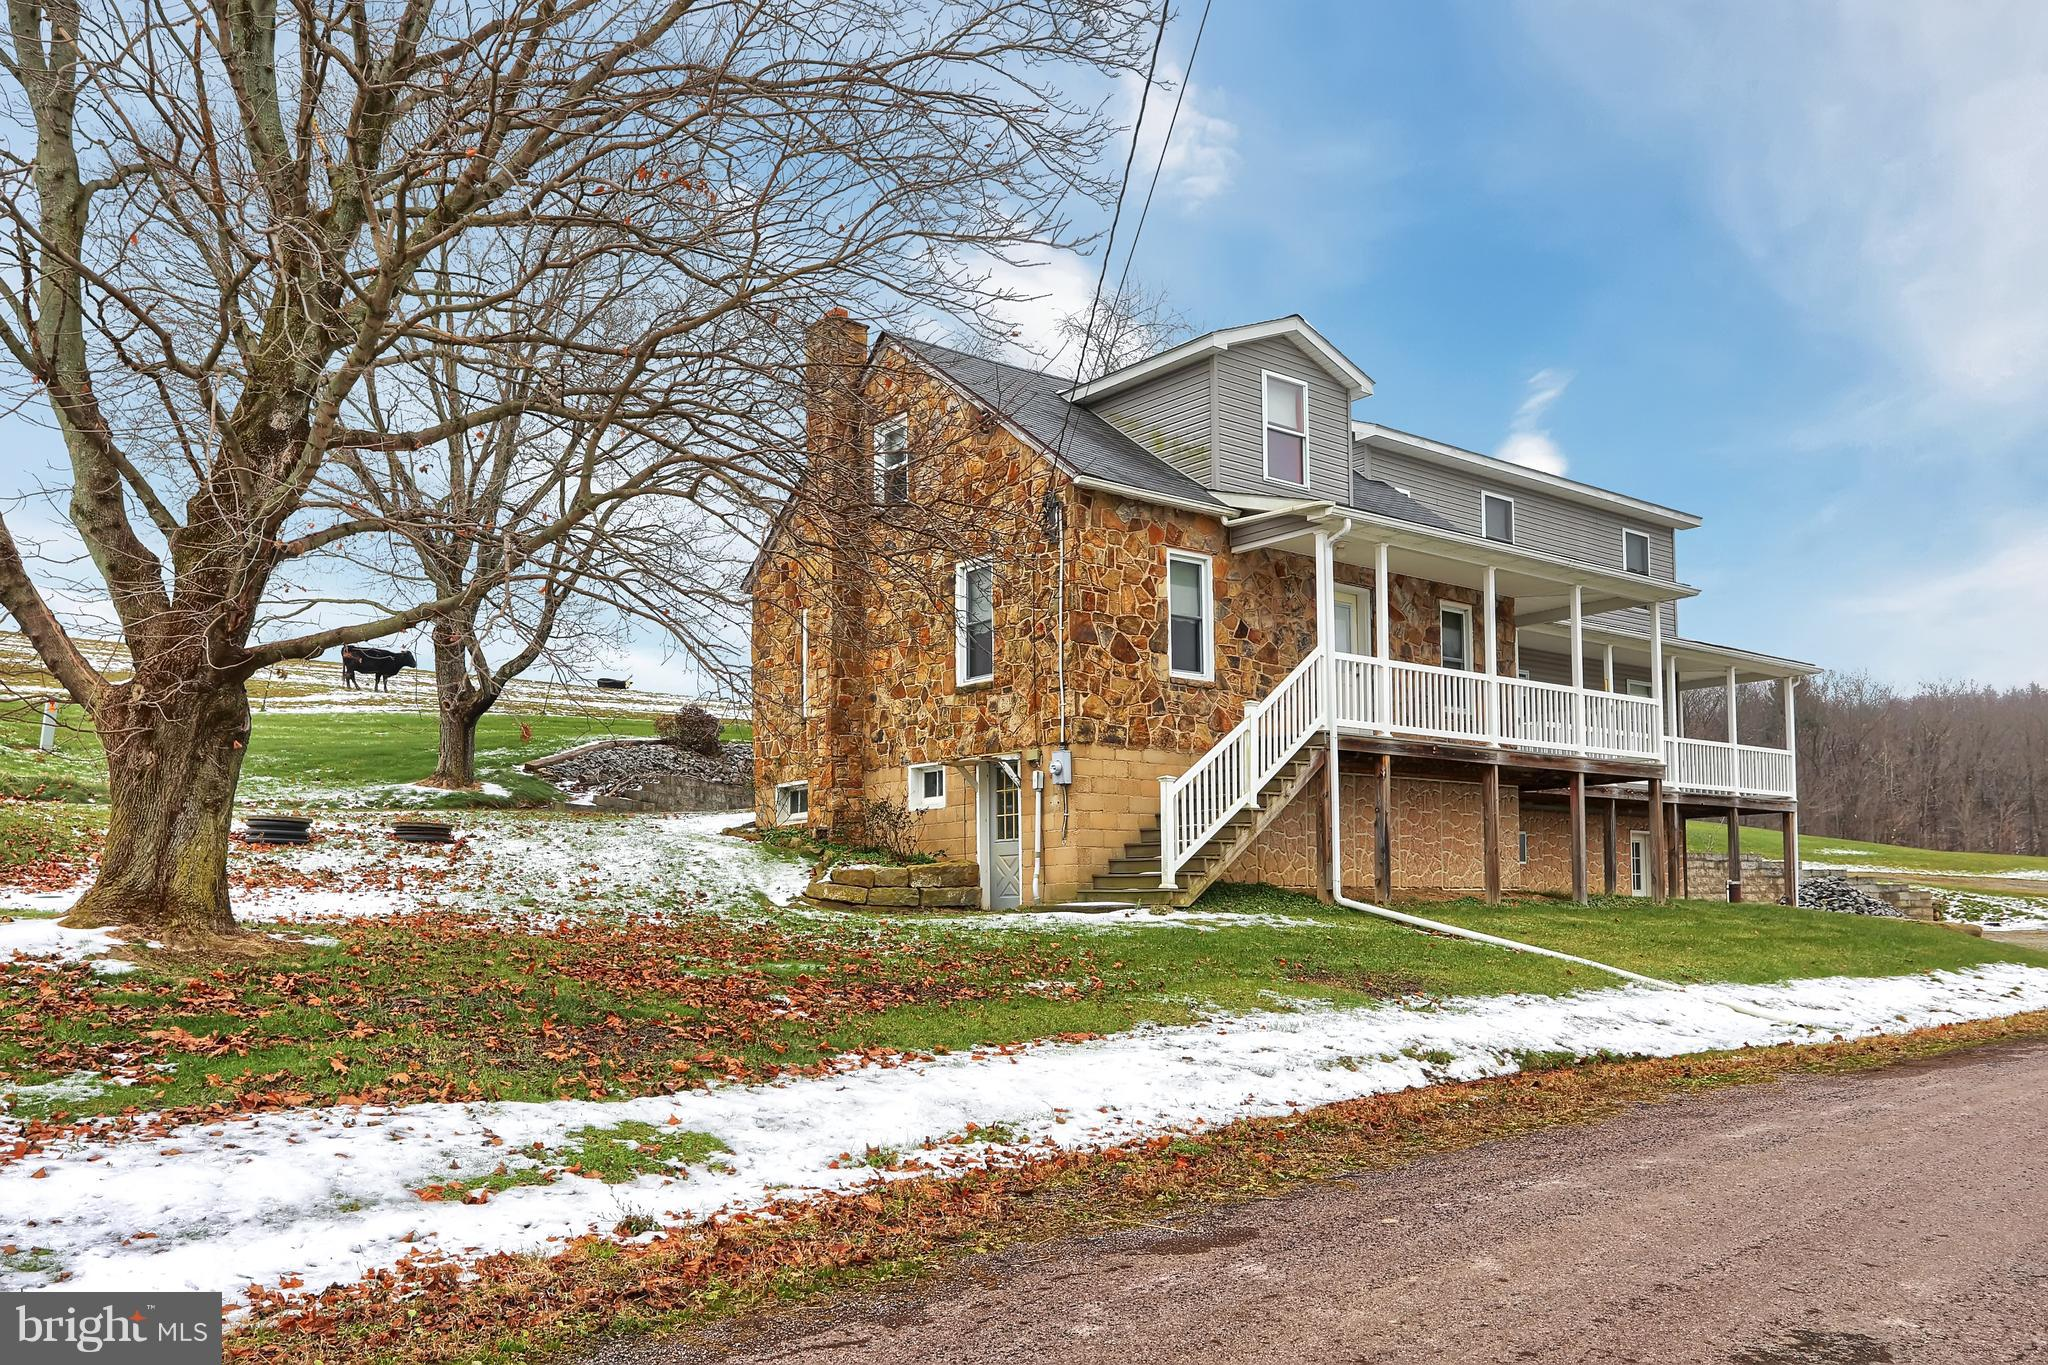 542 MARTS ROAD, FRIEDENS, PA 15541